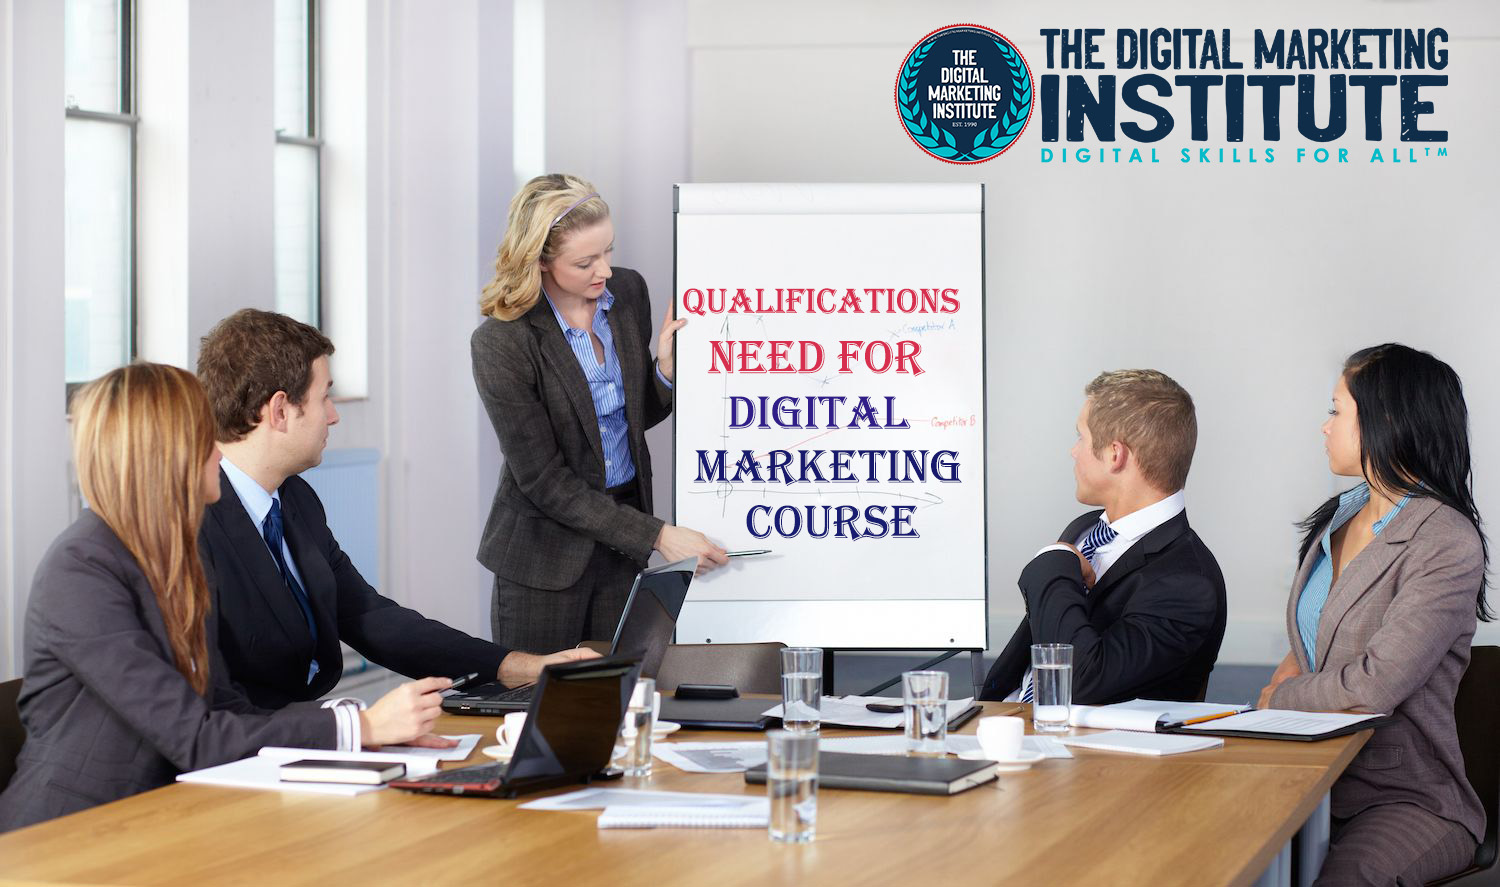 QUALIFICATIONS NEED FOR A DIGITAL MARKETING COURSE